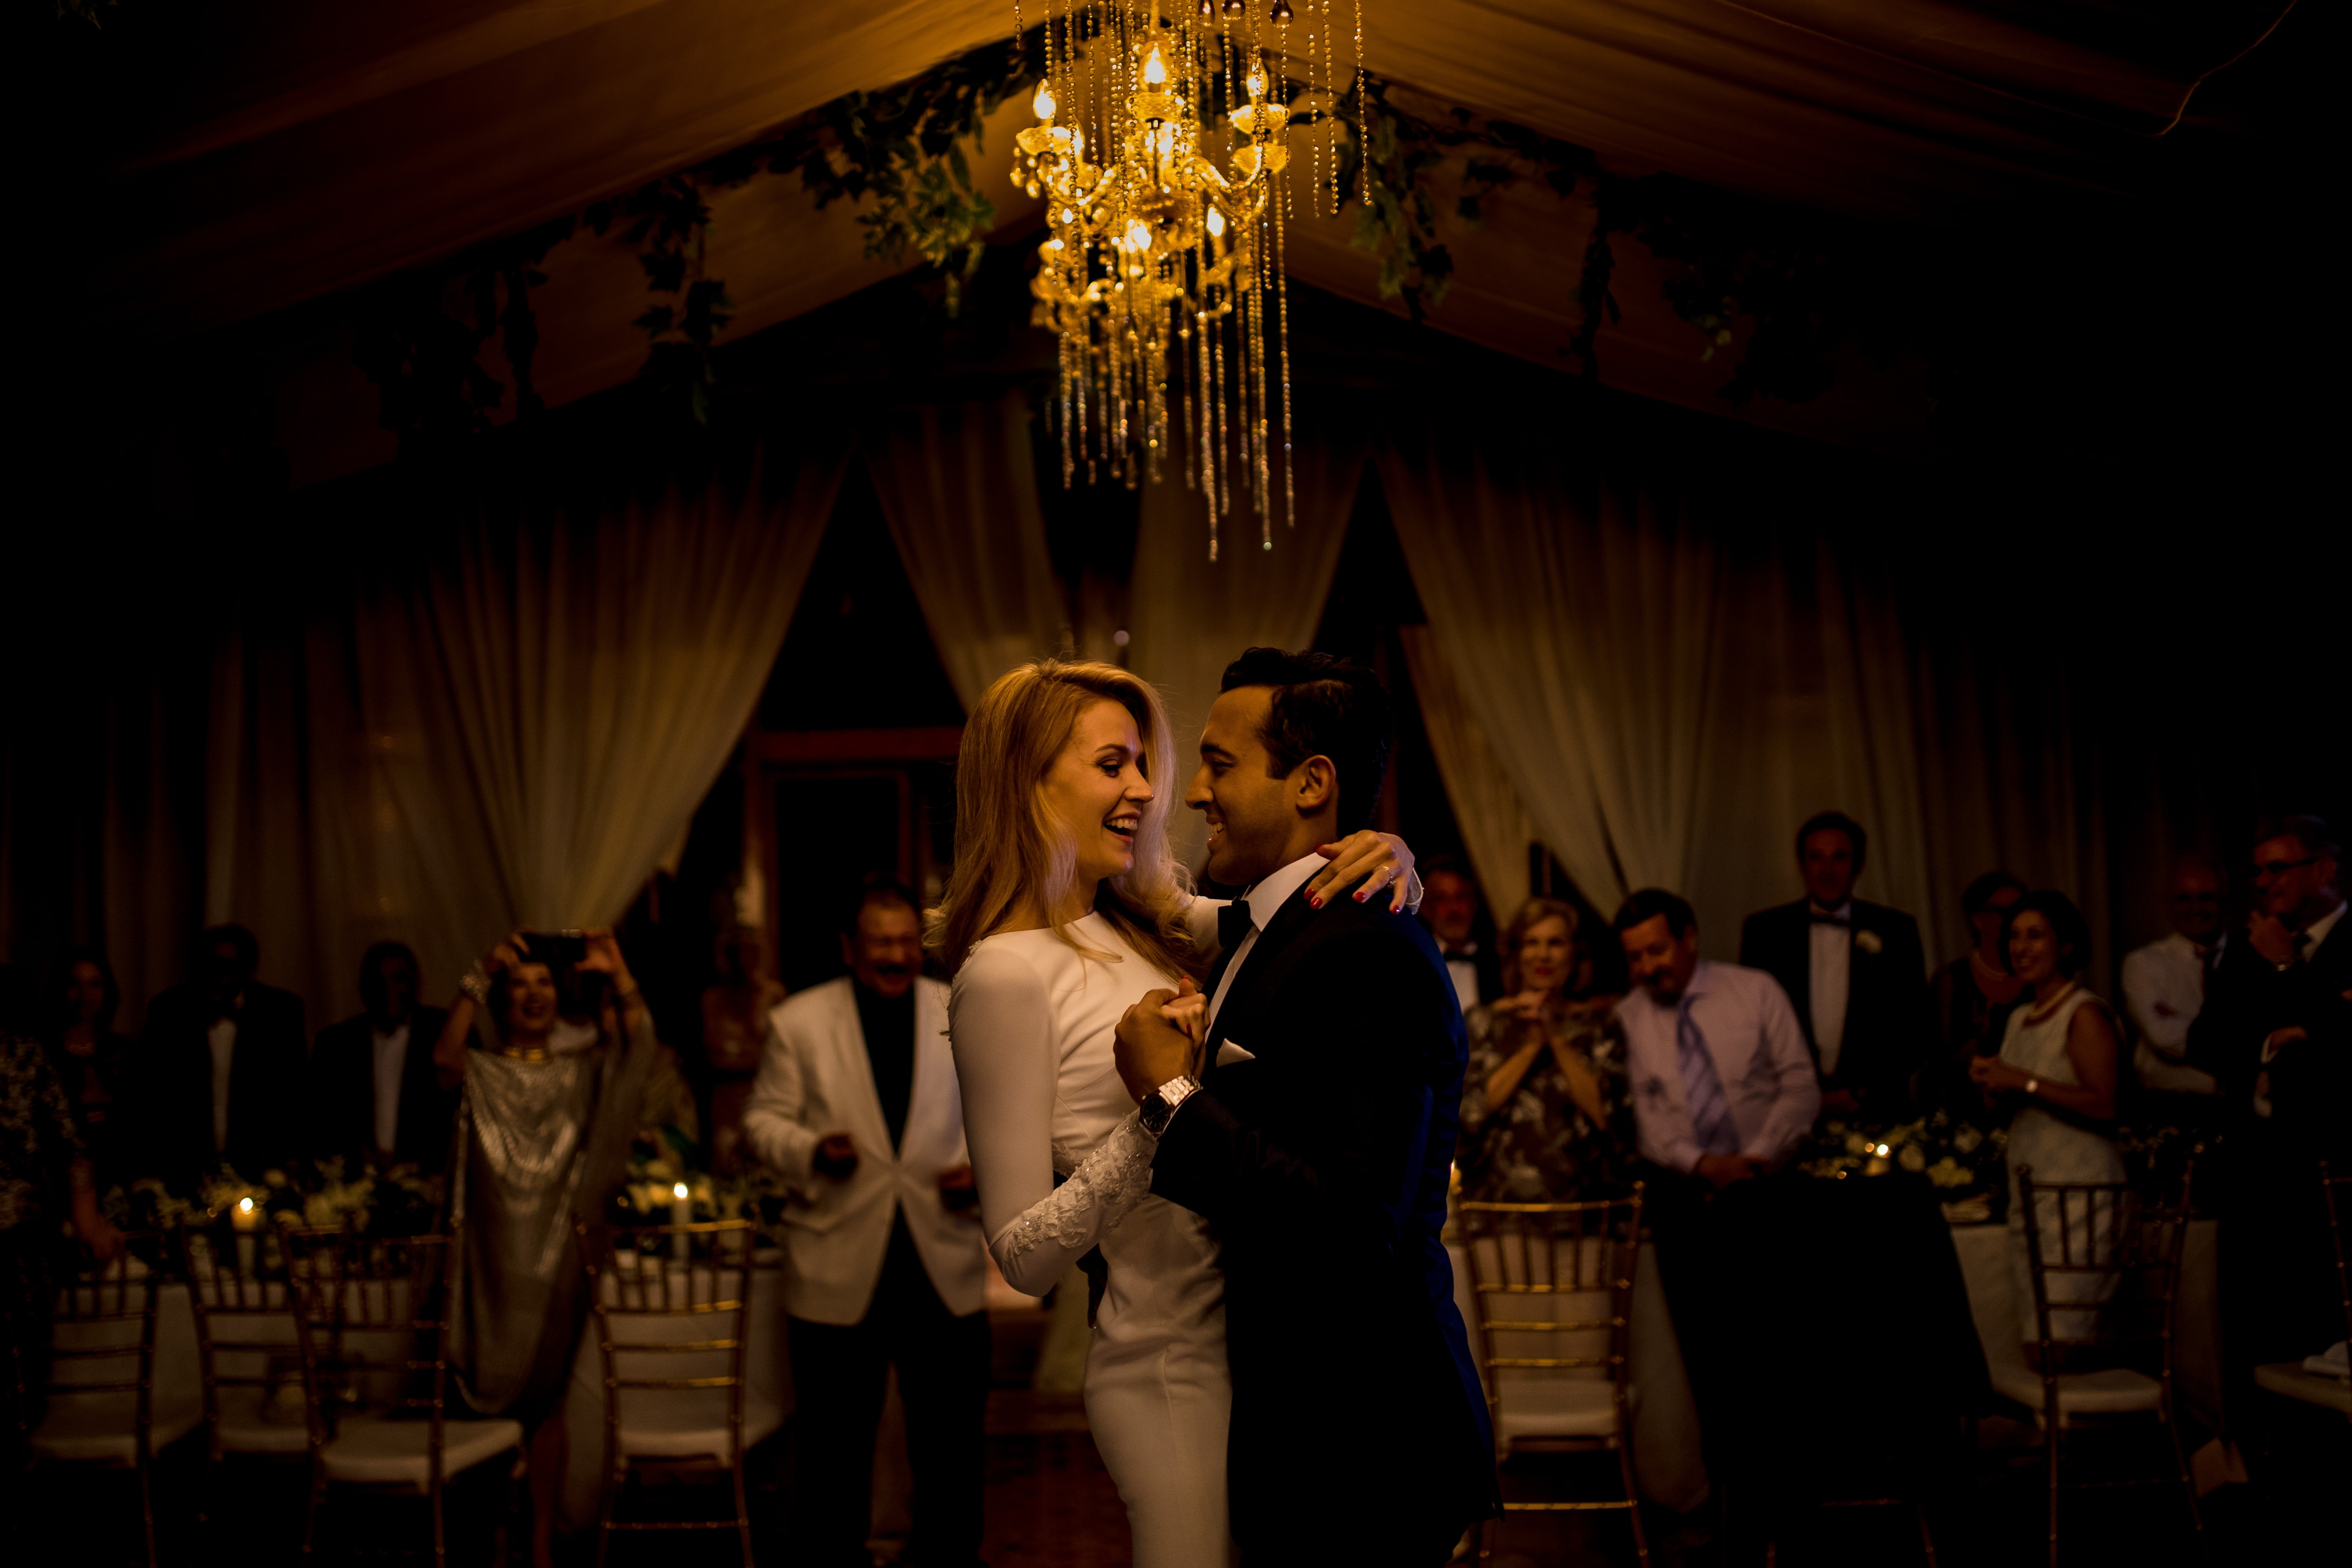 A bride and groom share a first dance by Shangri-La wedding photographer Julian Abram Wainwright